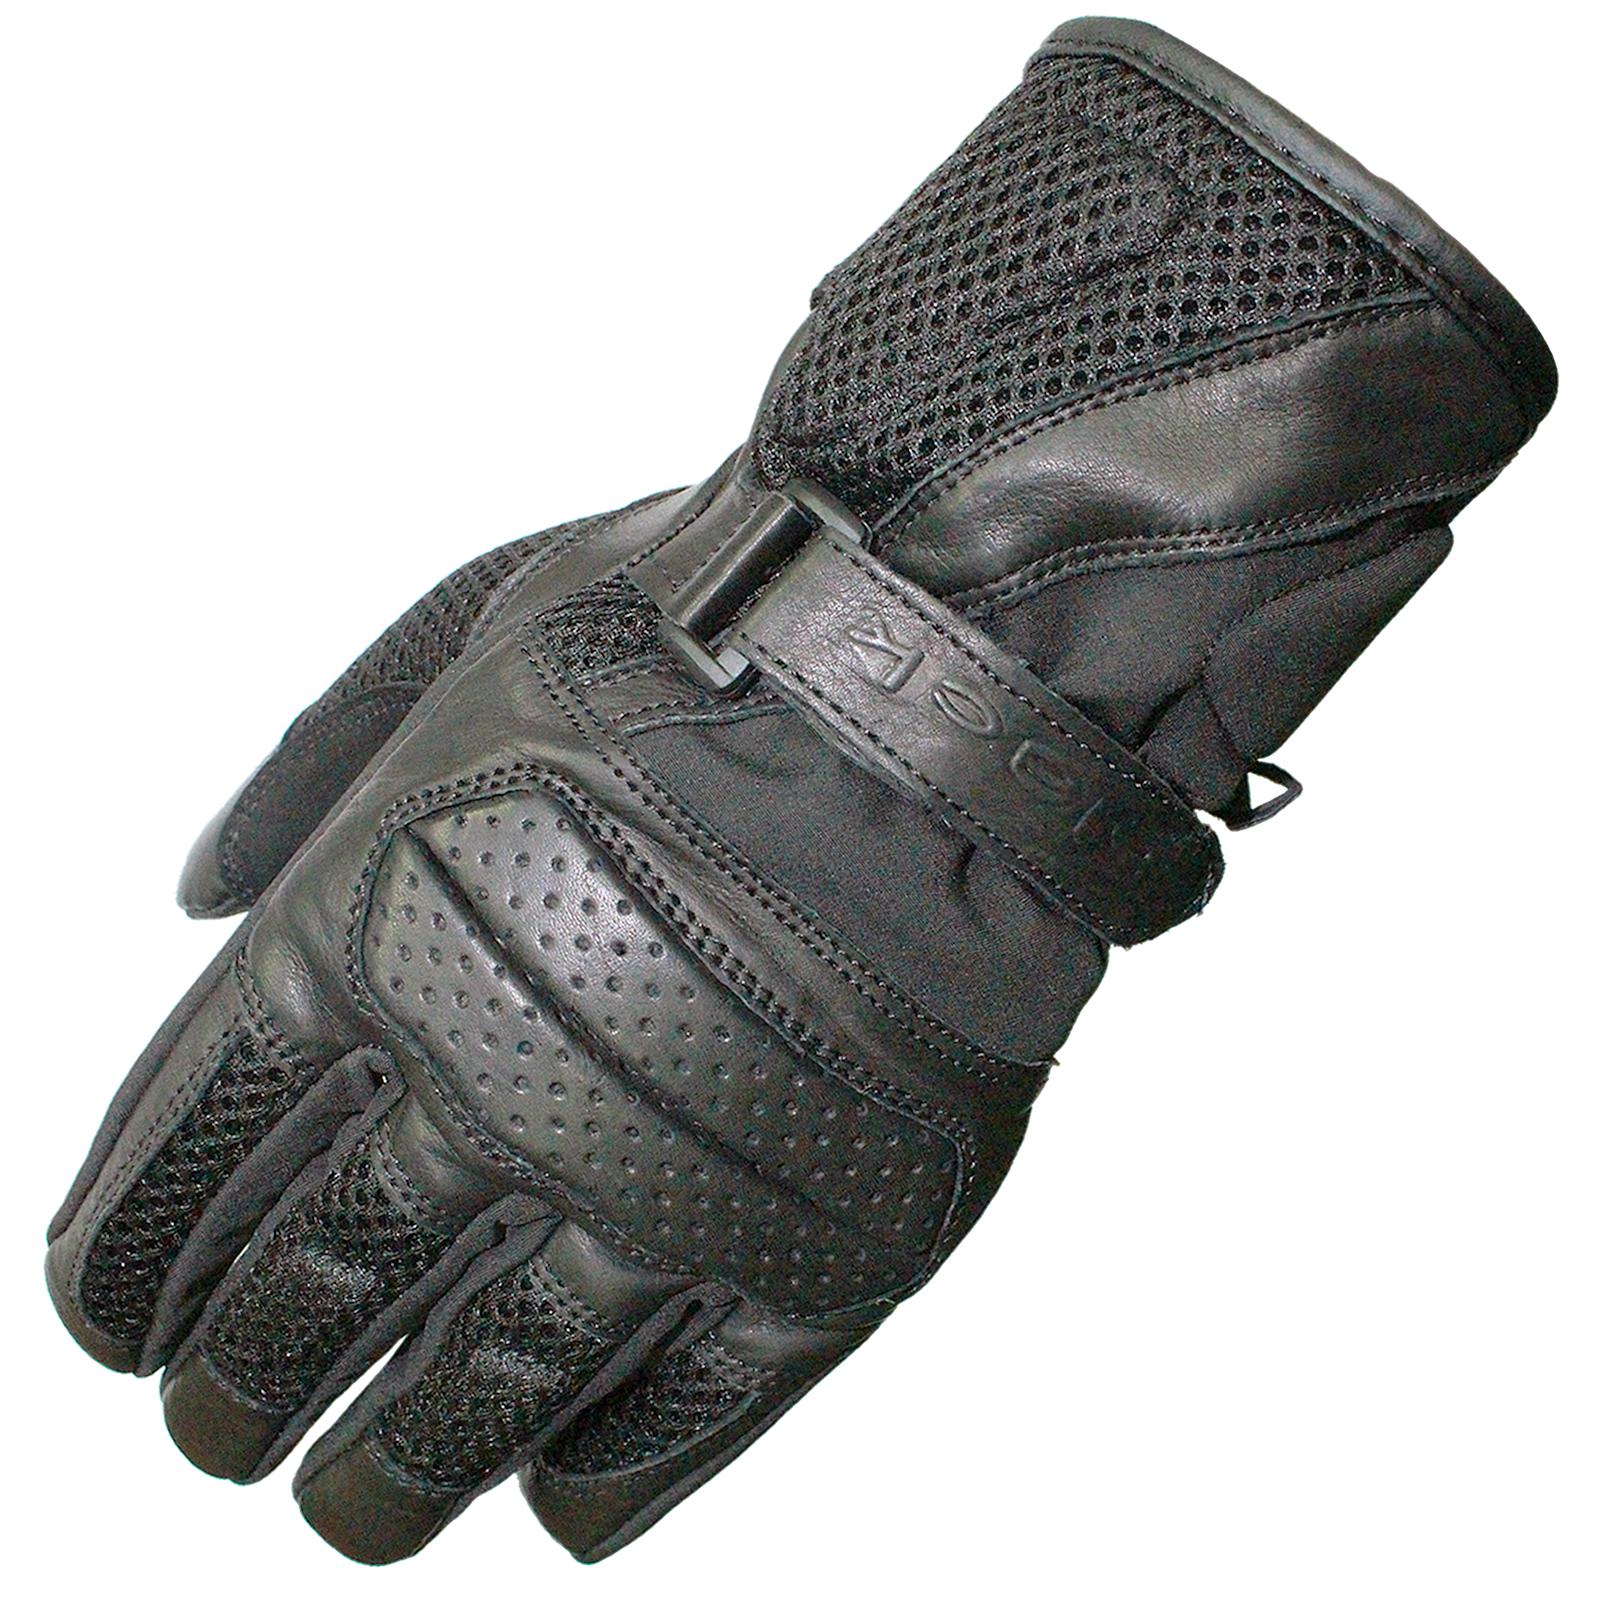 Motorcycle gloves for summer - Black Airflow Leather Mesh Summer Motorcycle Gloves Vented